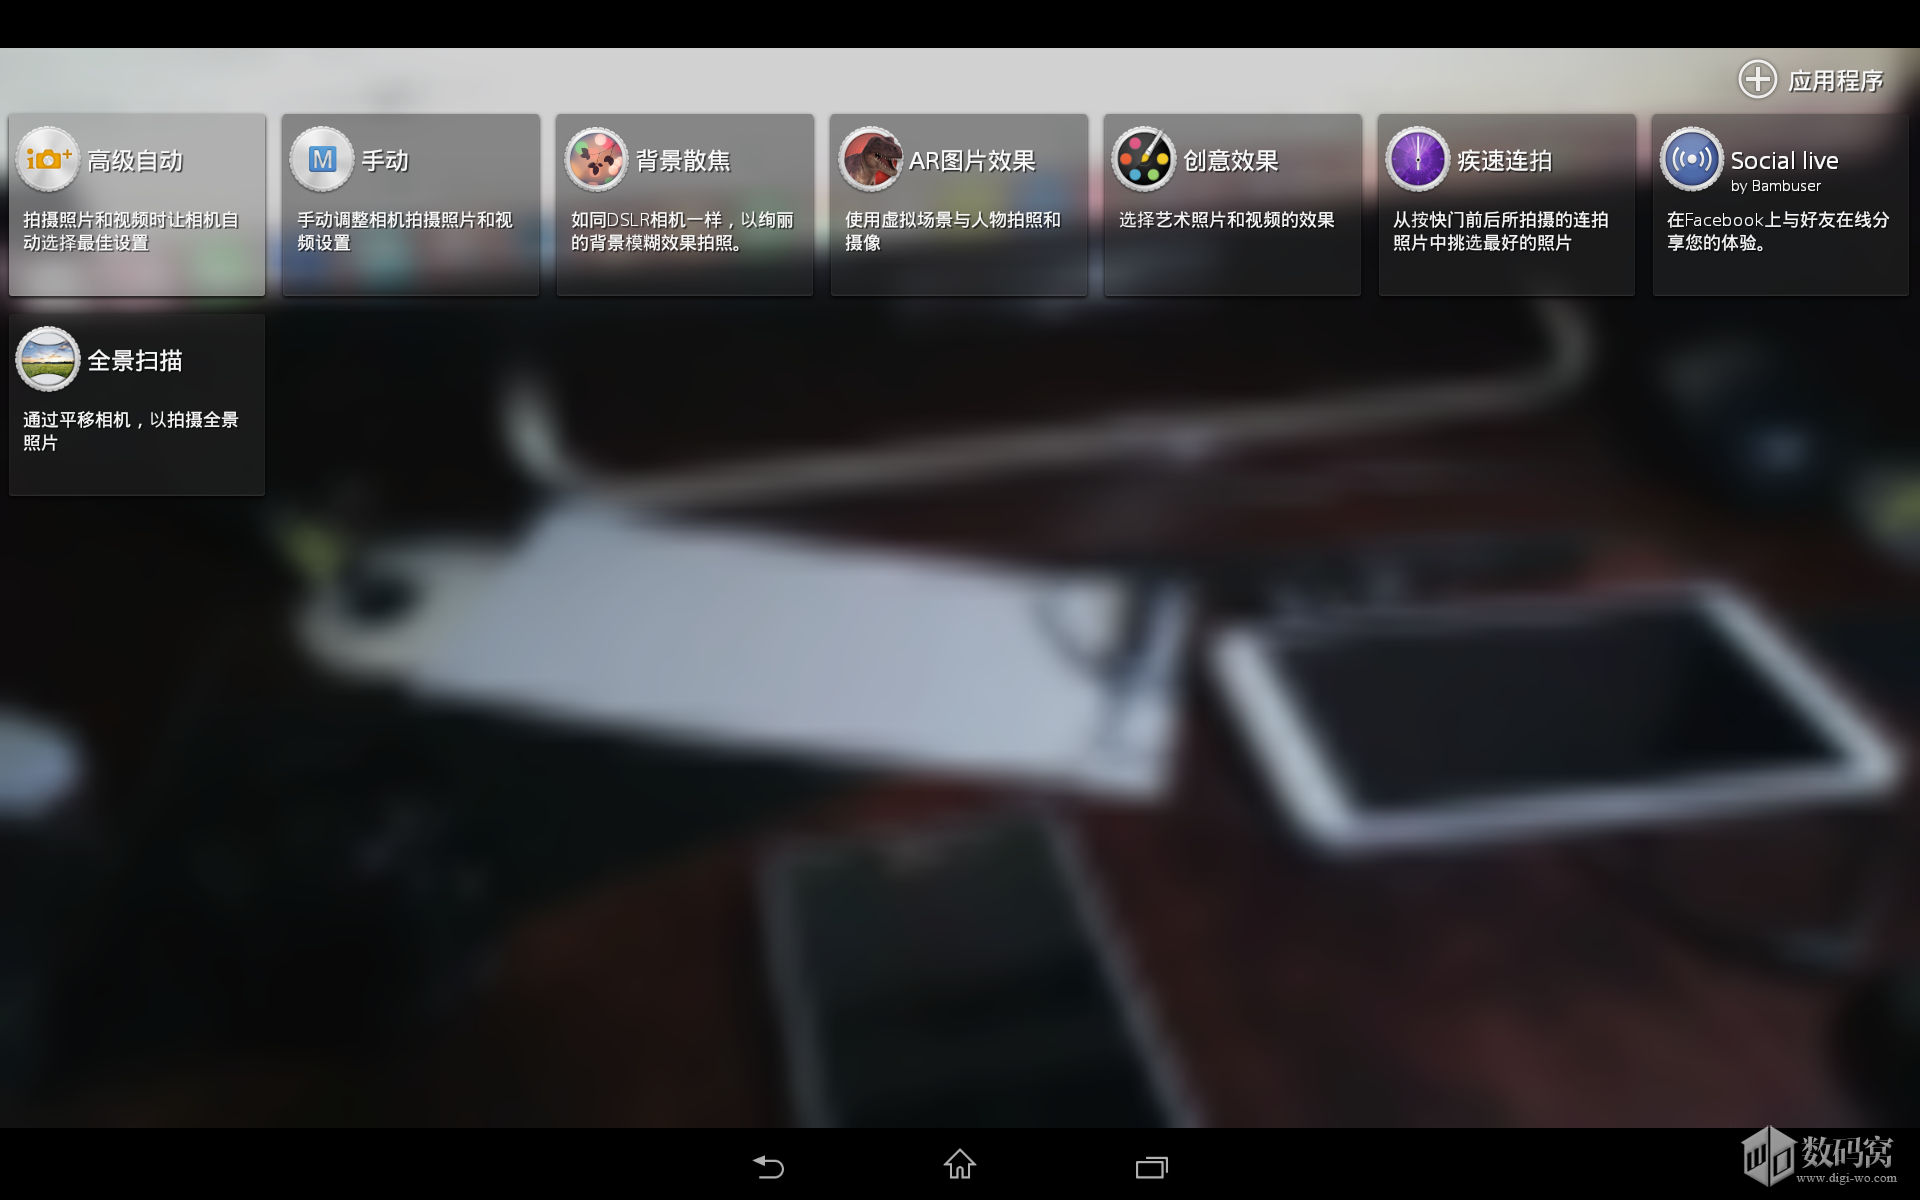 Xperia Z2 Tablet Camera app